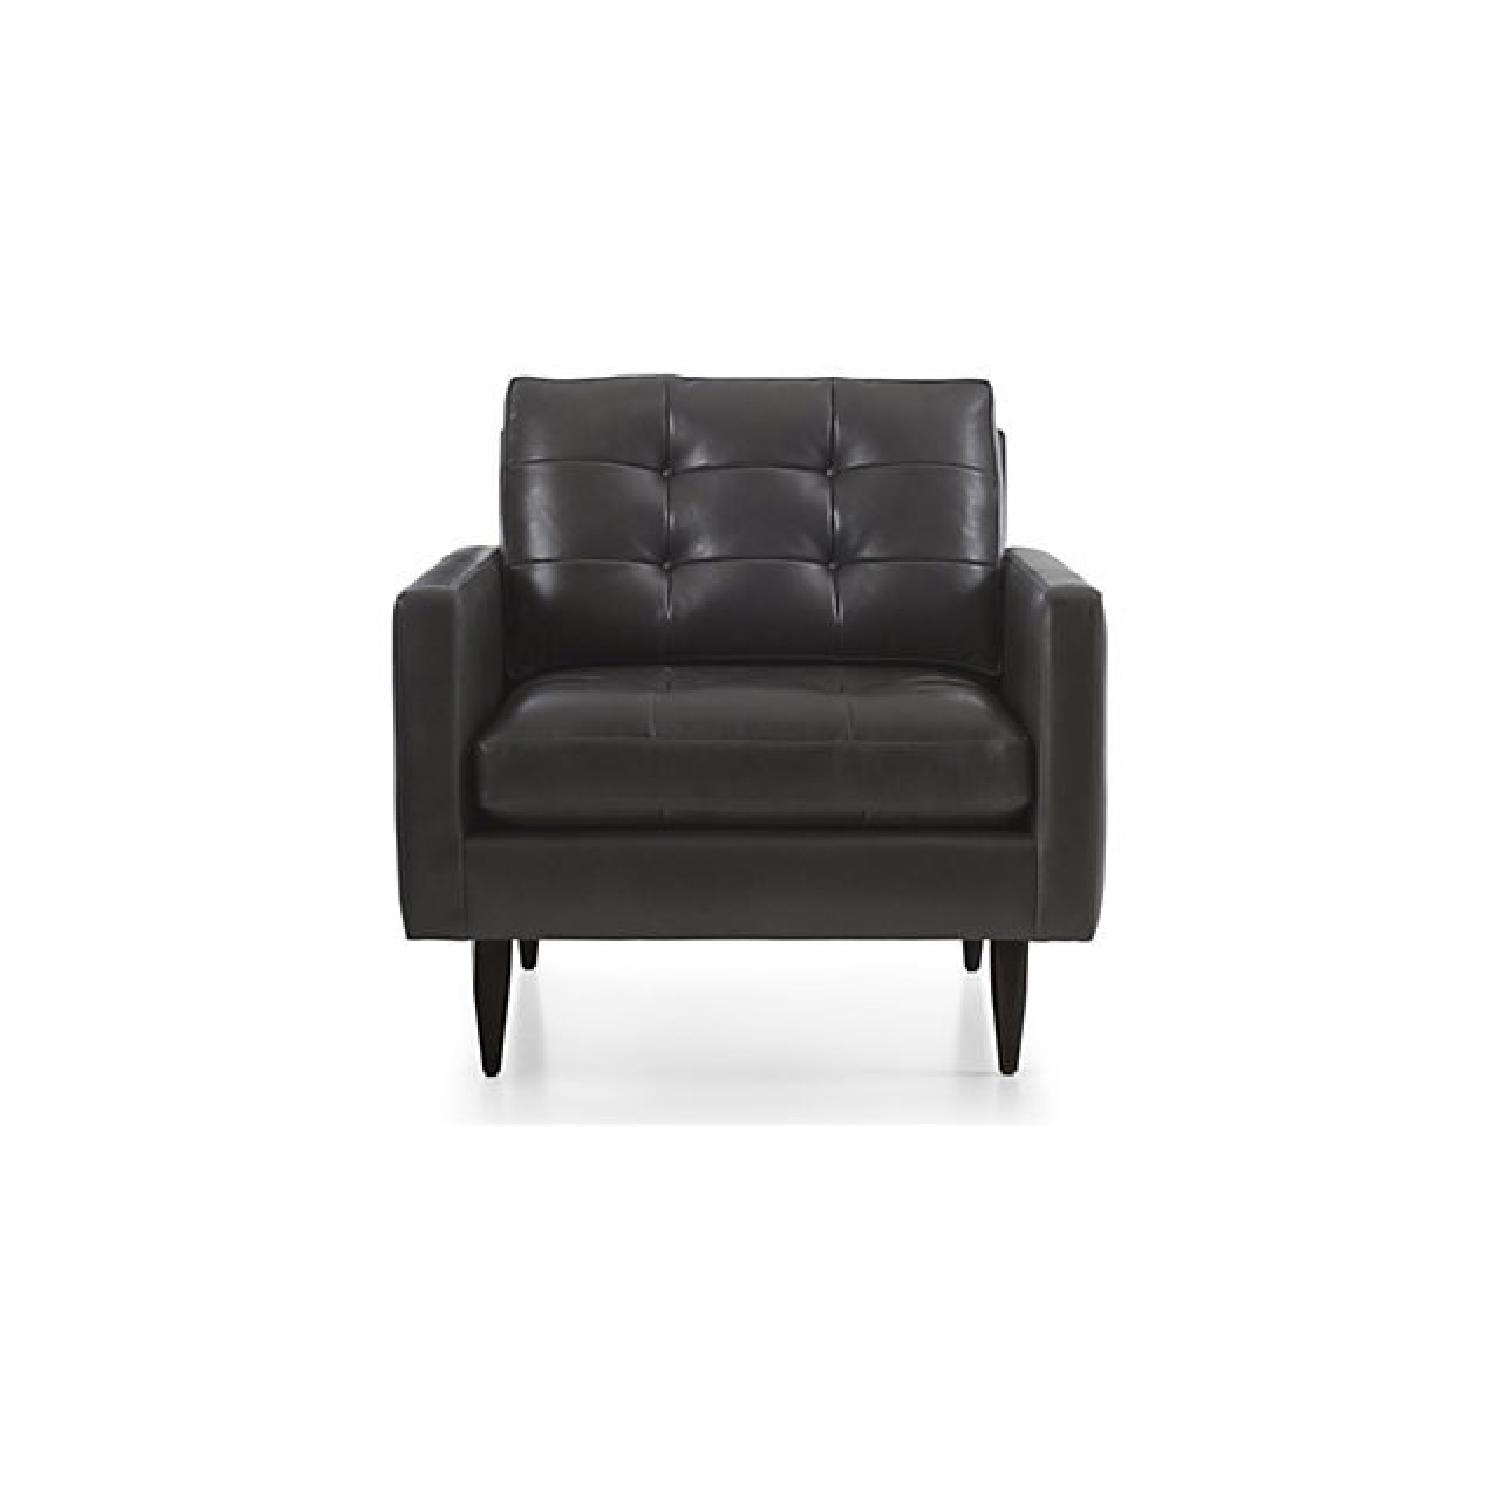 Crate & Barrel Petrie Leather Mid Century Chair + Ottoman